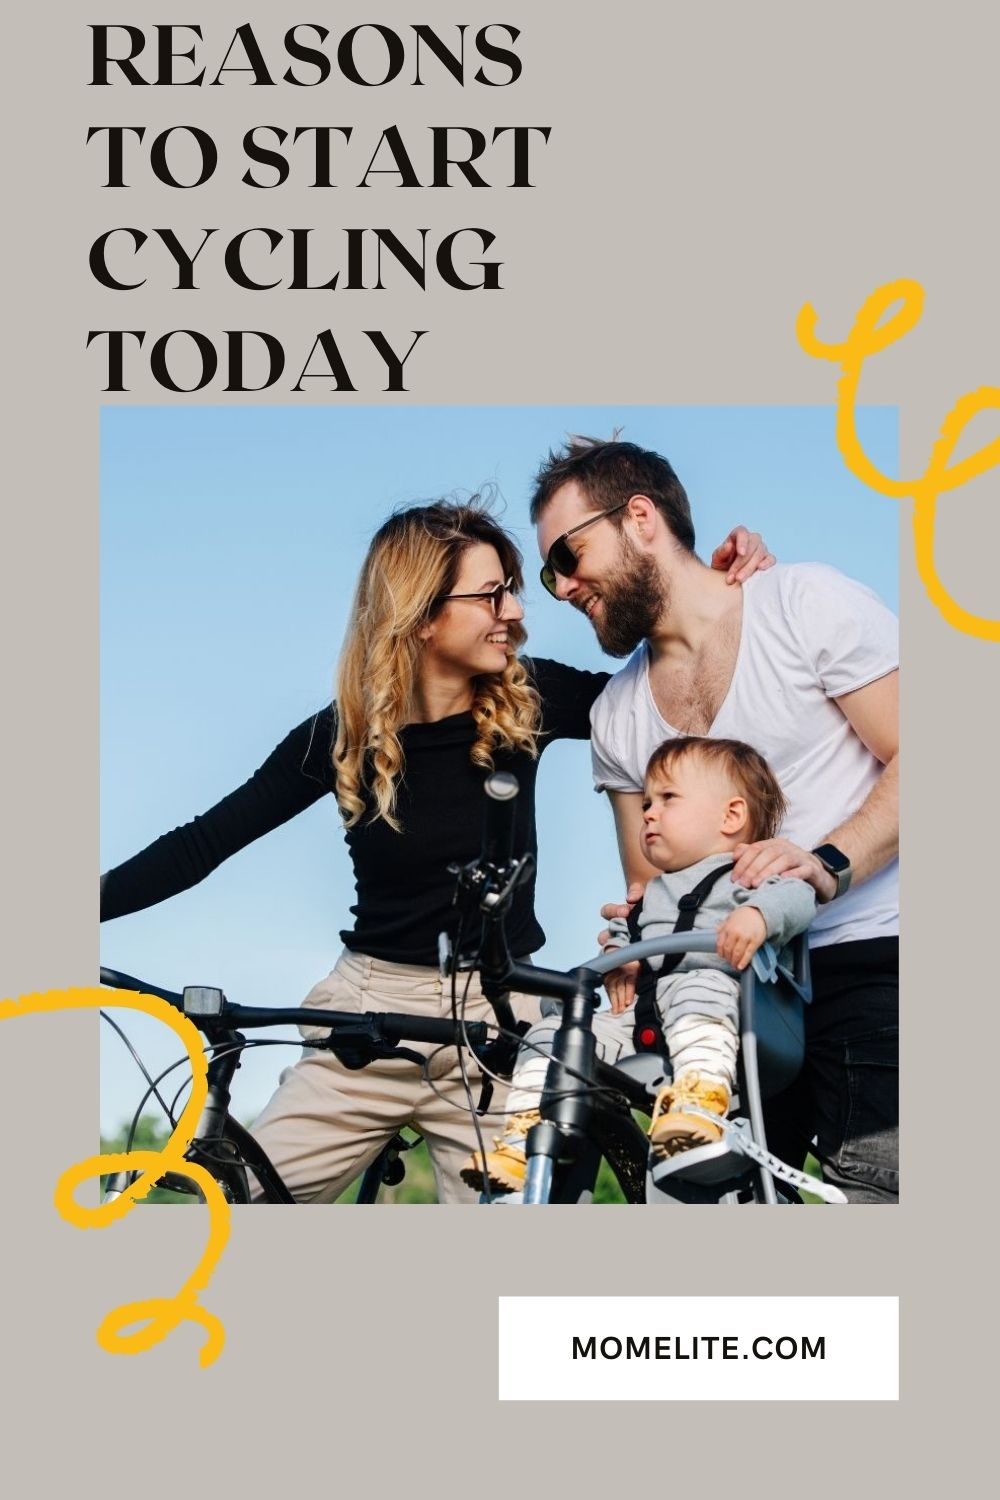 REASONS TO START CYCLING TODAY